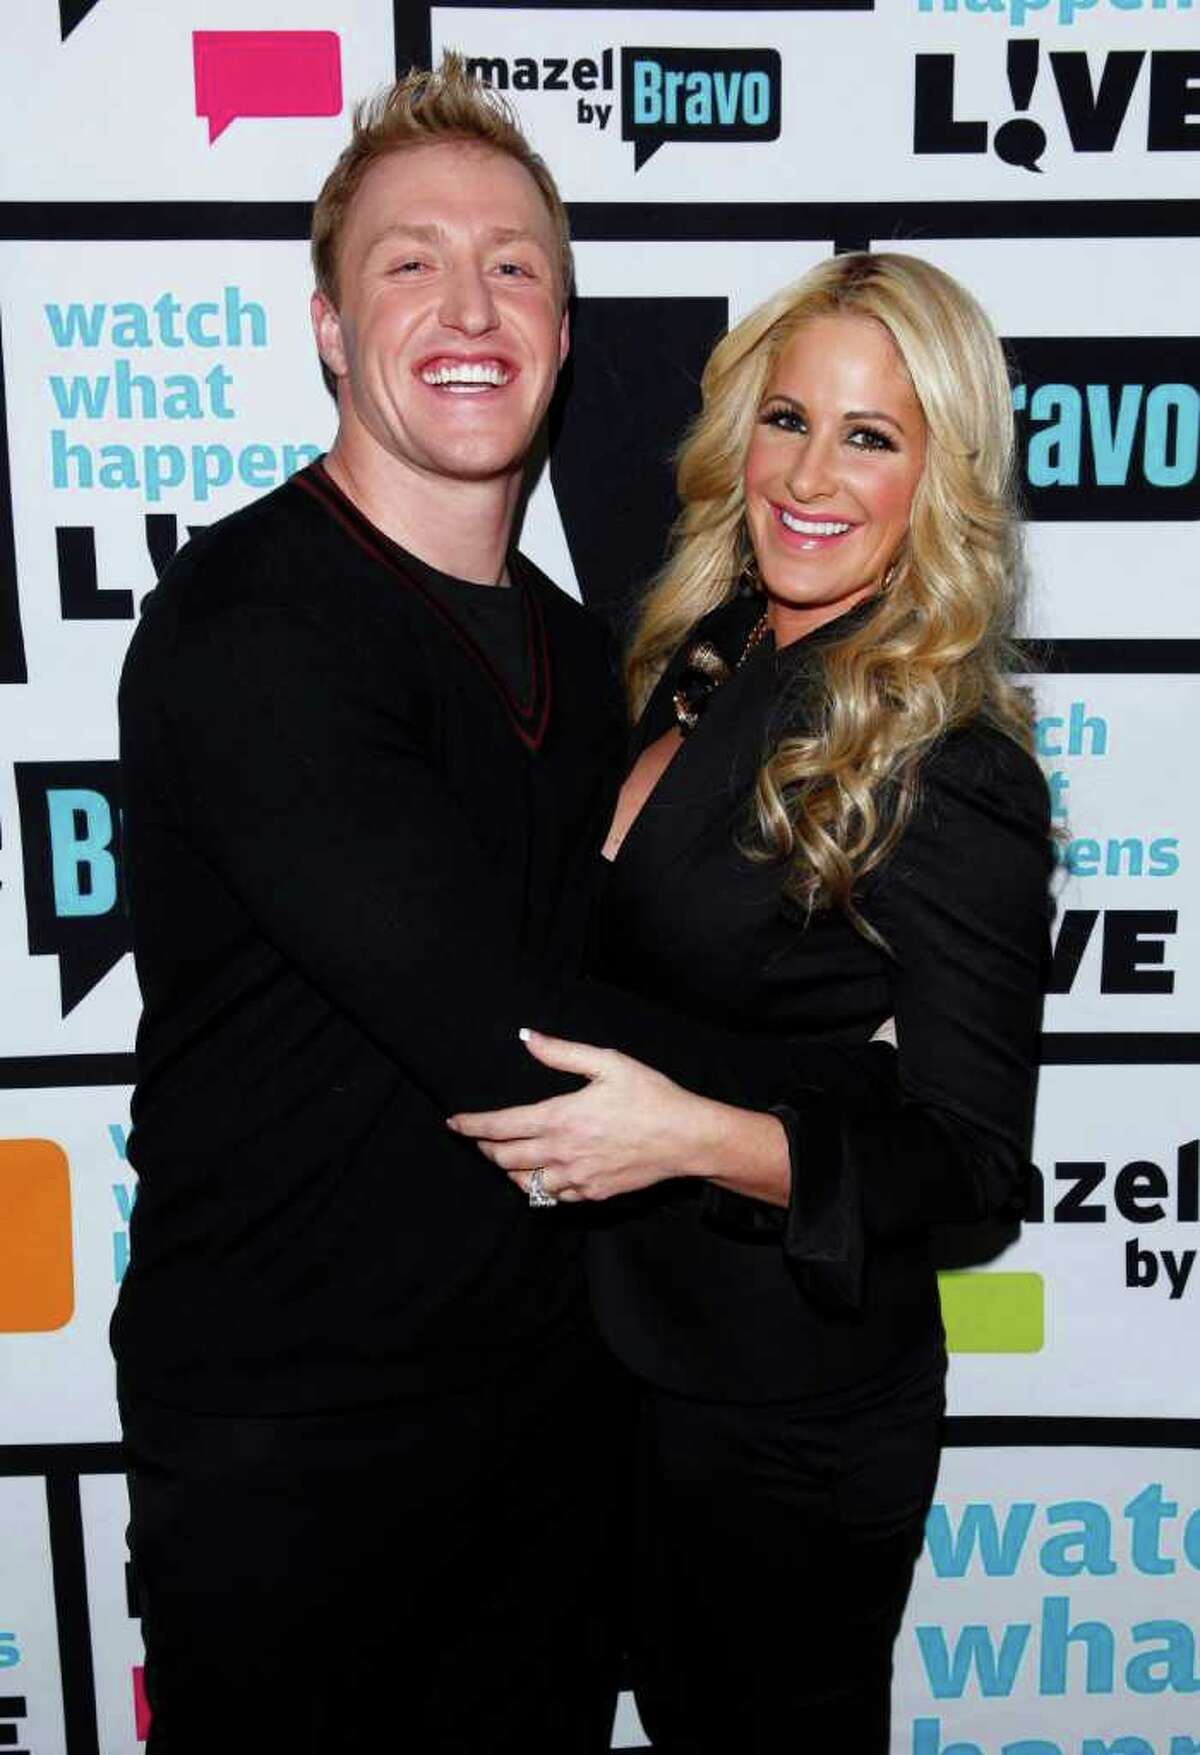 FILE - In this Jan. 29, 2012 file image released by Bravo, Kroy Biermann, left, and Kim Zolciak pose backstage after Bravo's